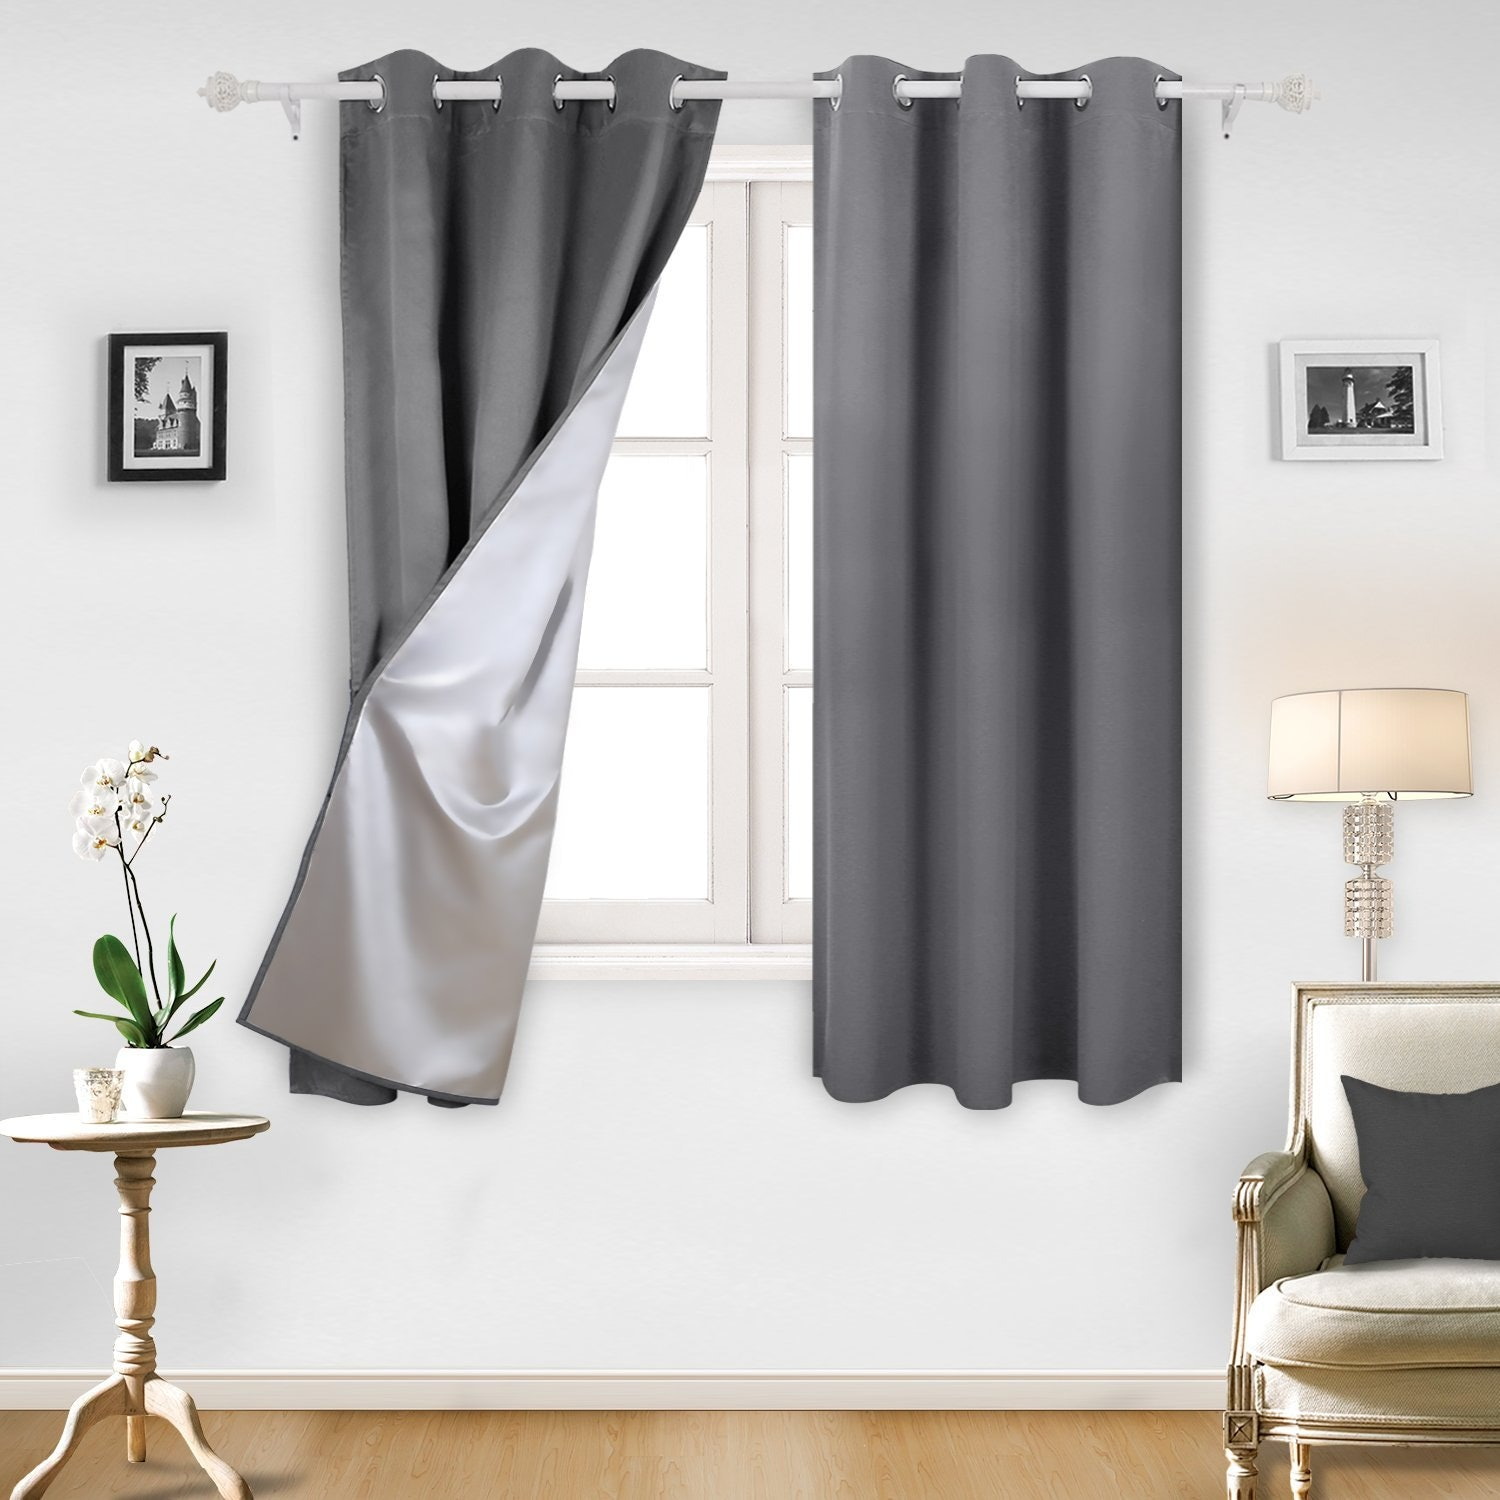 The 7 best blackout curtains